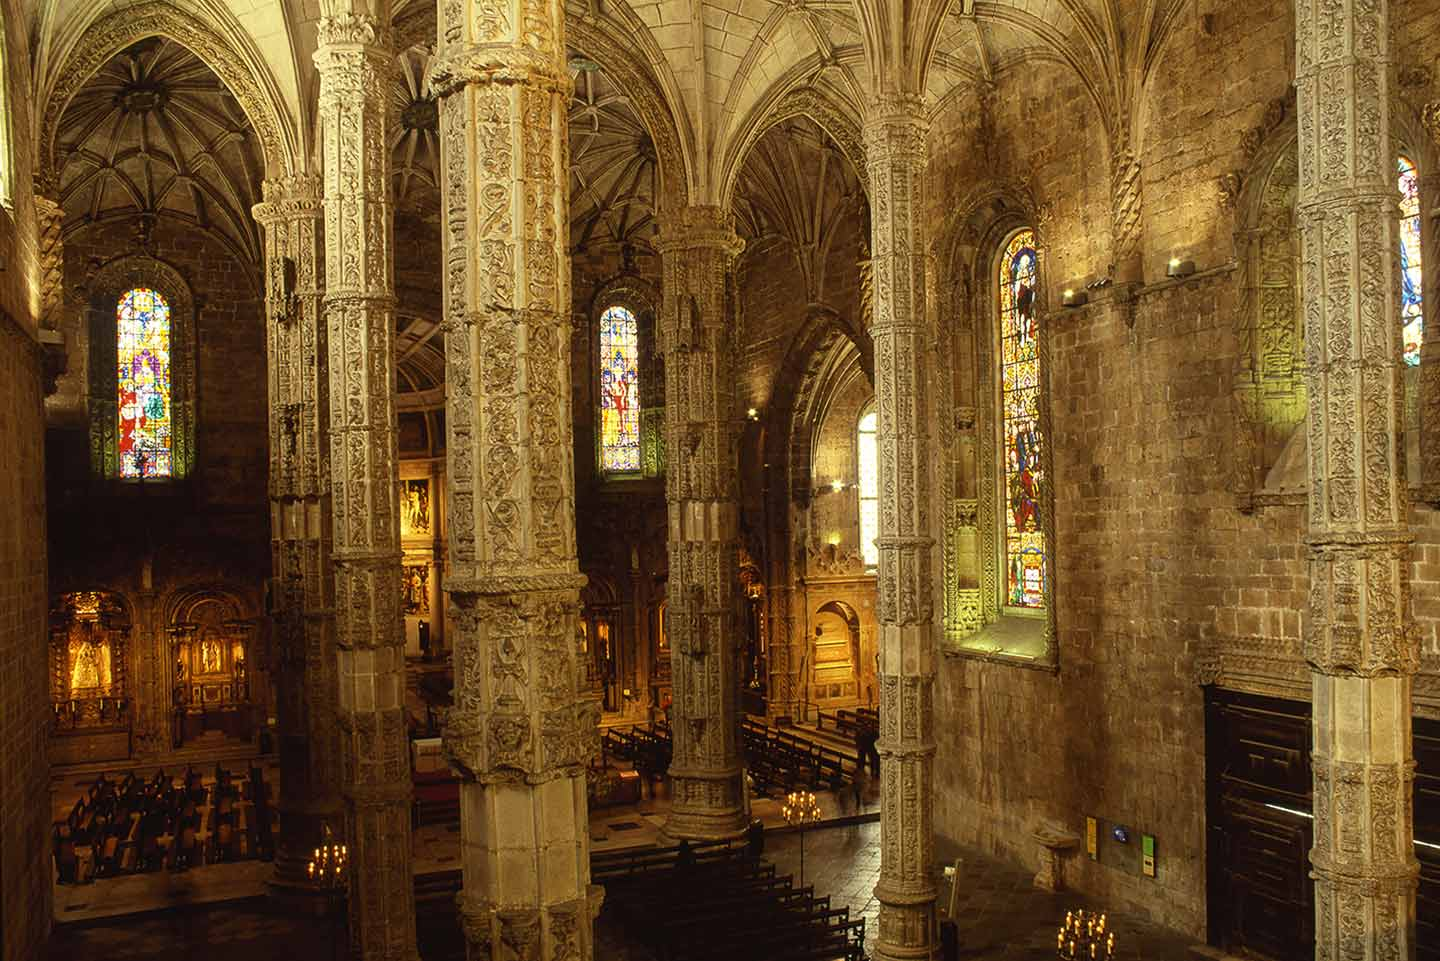 Image of the interior of the Mosteiro dos Jeronimos church in Belem